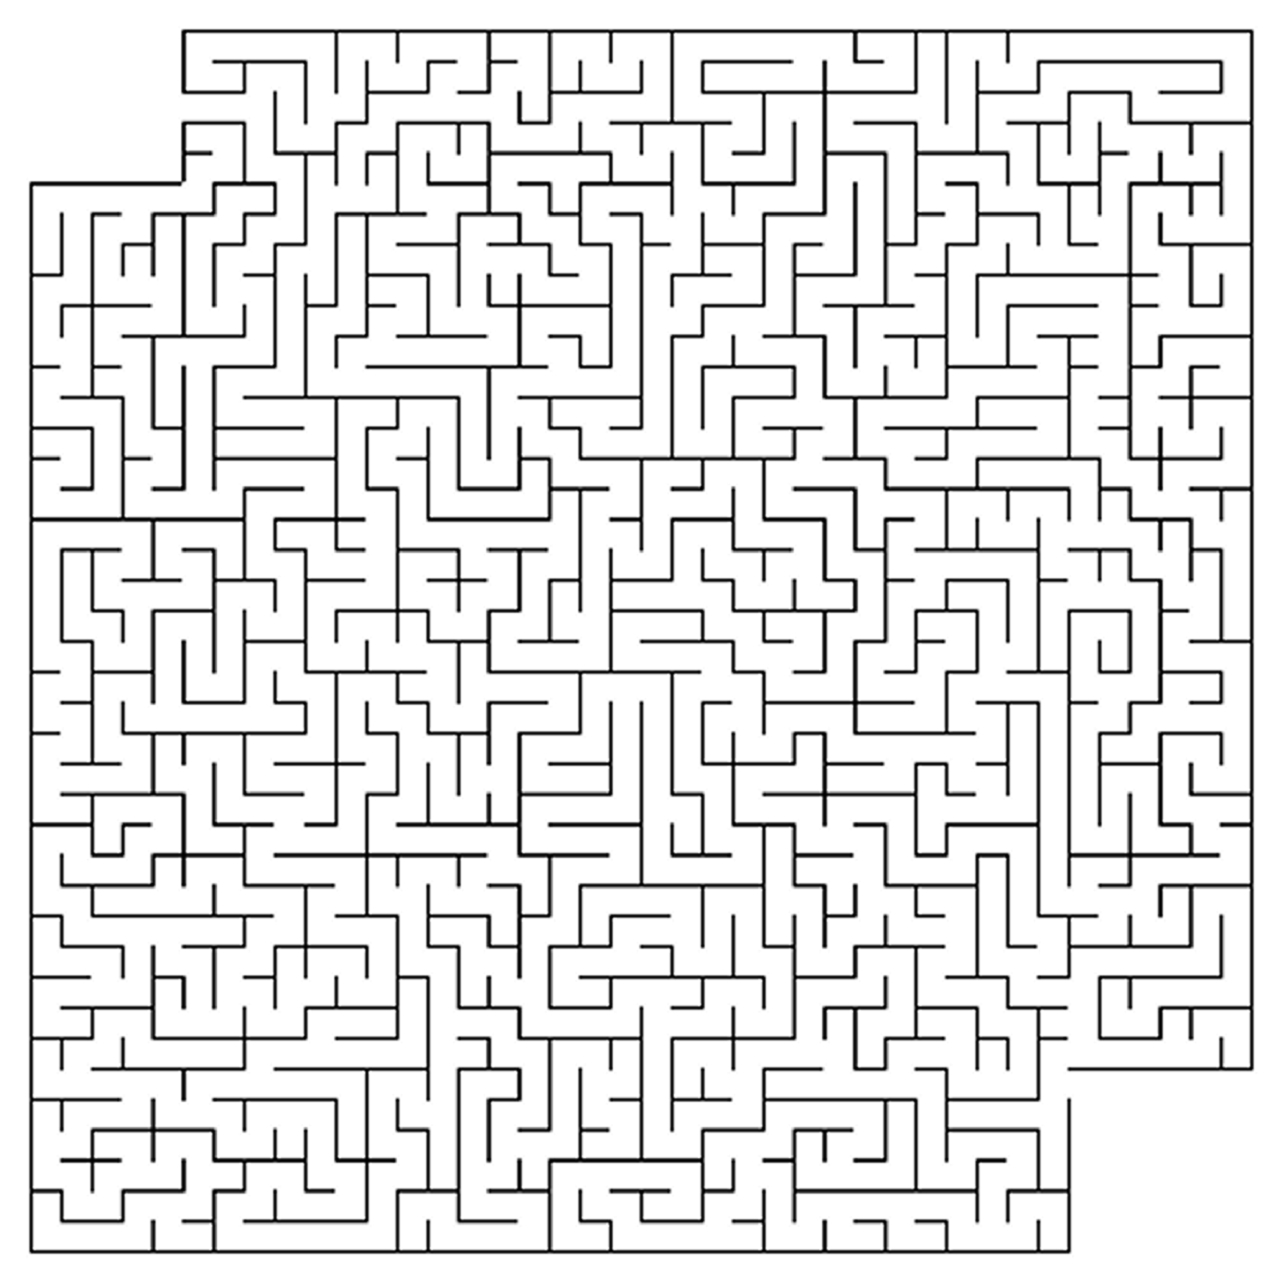 Hard Mazes - Best Coloring Pages For Kids - Printable Puzzles And Mazes